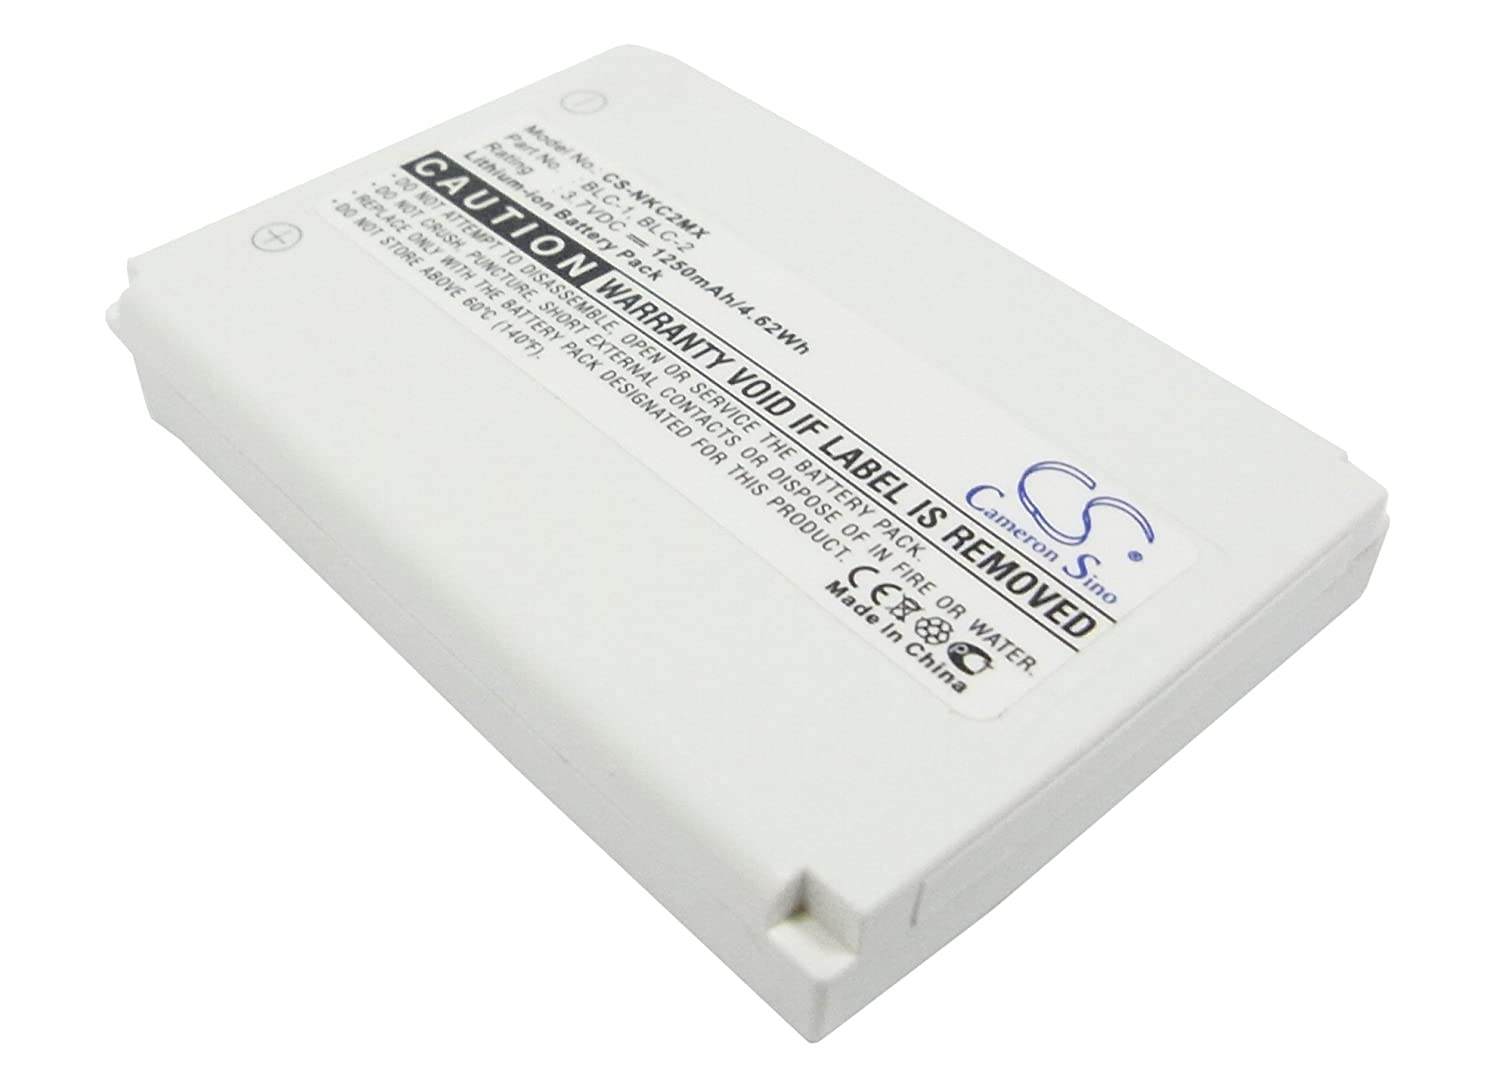 1250mAh Replacement Battery for Nokia 1221, 3390, 3395, 3410 VINTRONS